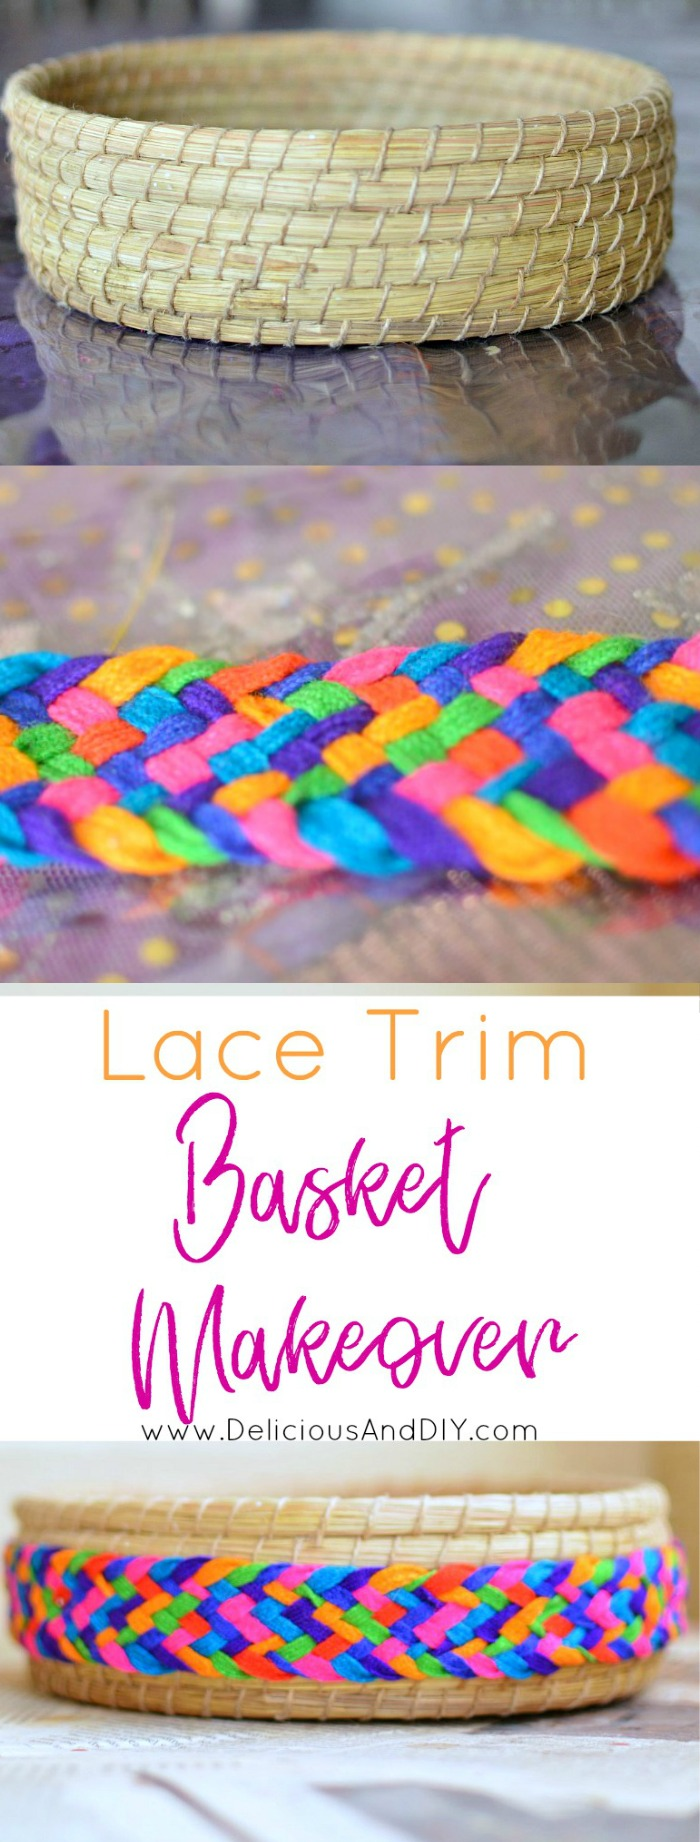 Spruce up those plain looking baskets using this simple trick| Lace Trim Baket Makeover| Craft Projects done in under 5 minutes| Handwoven Basket Update| DIY Craft Project| home Decor| Craft Ideas